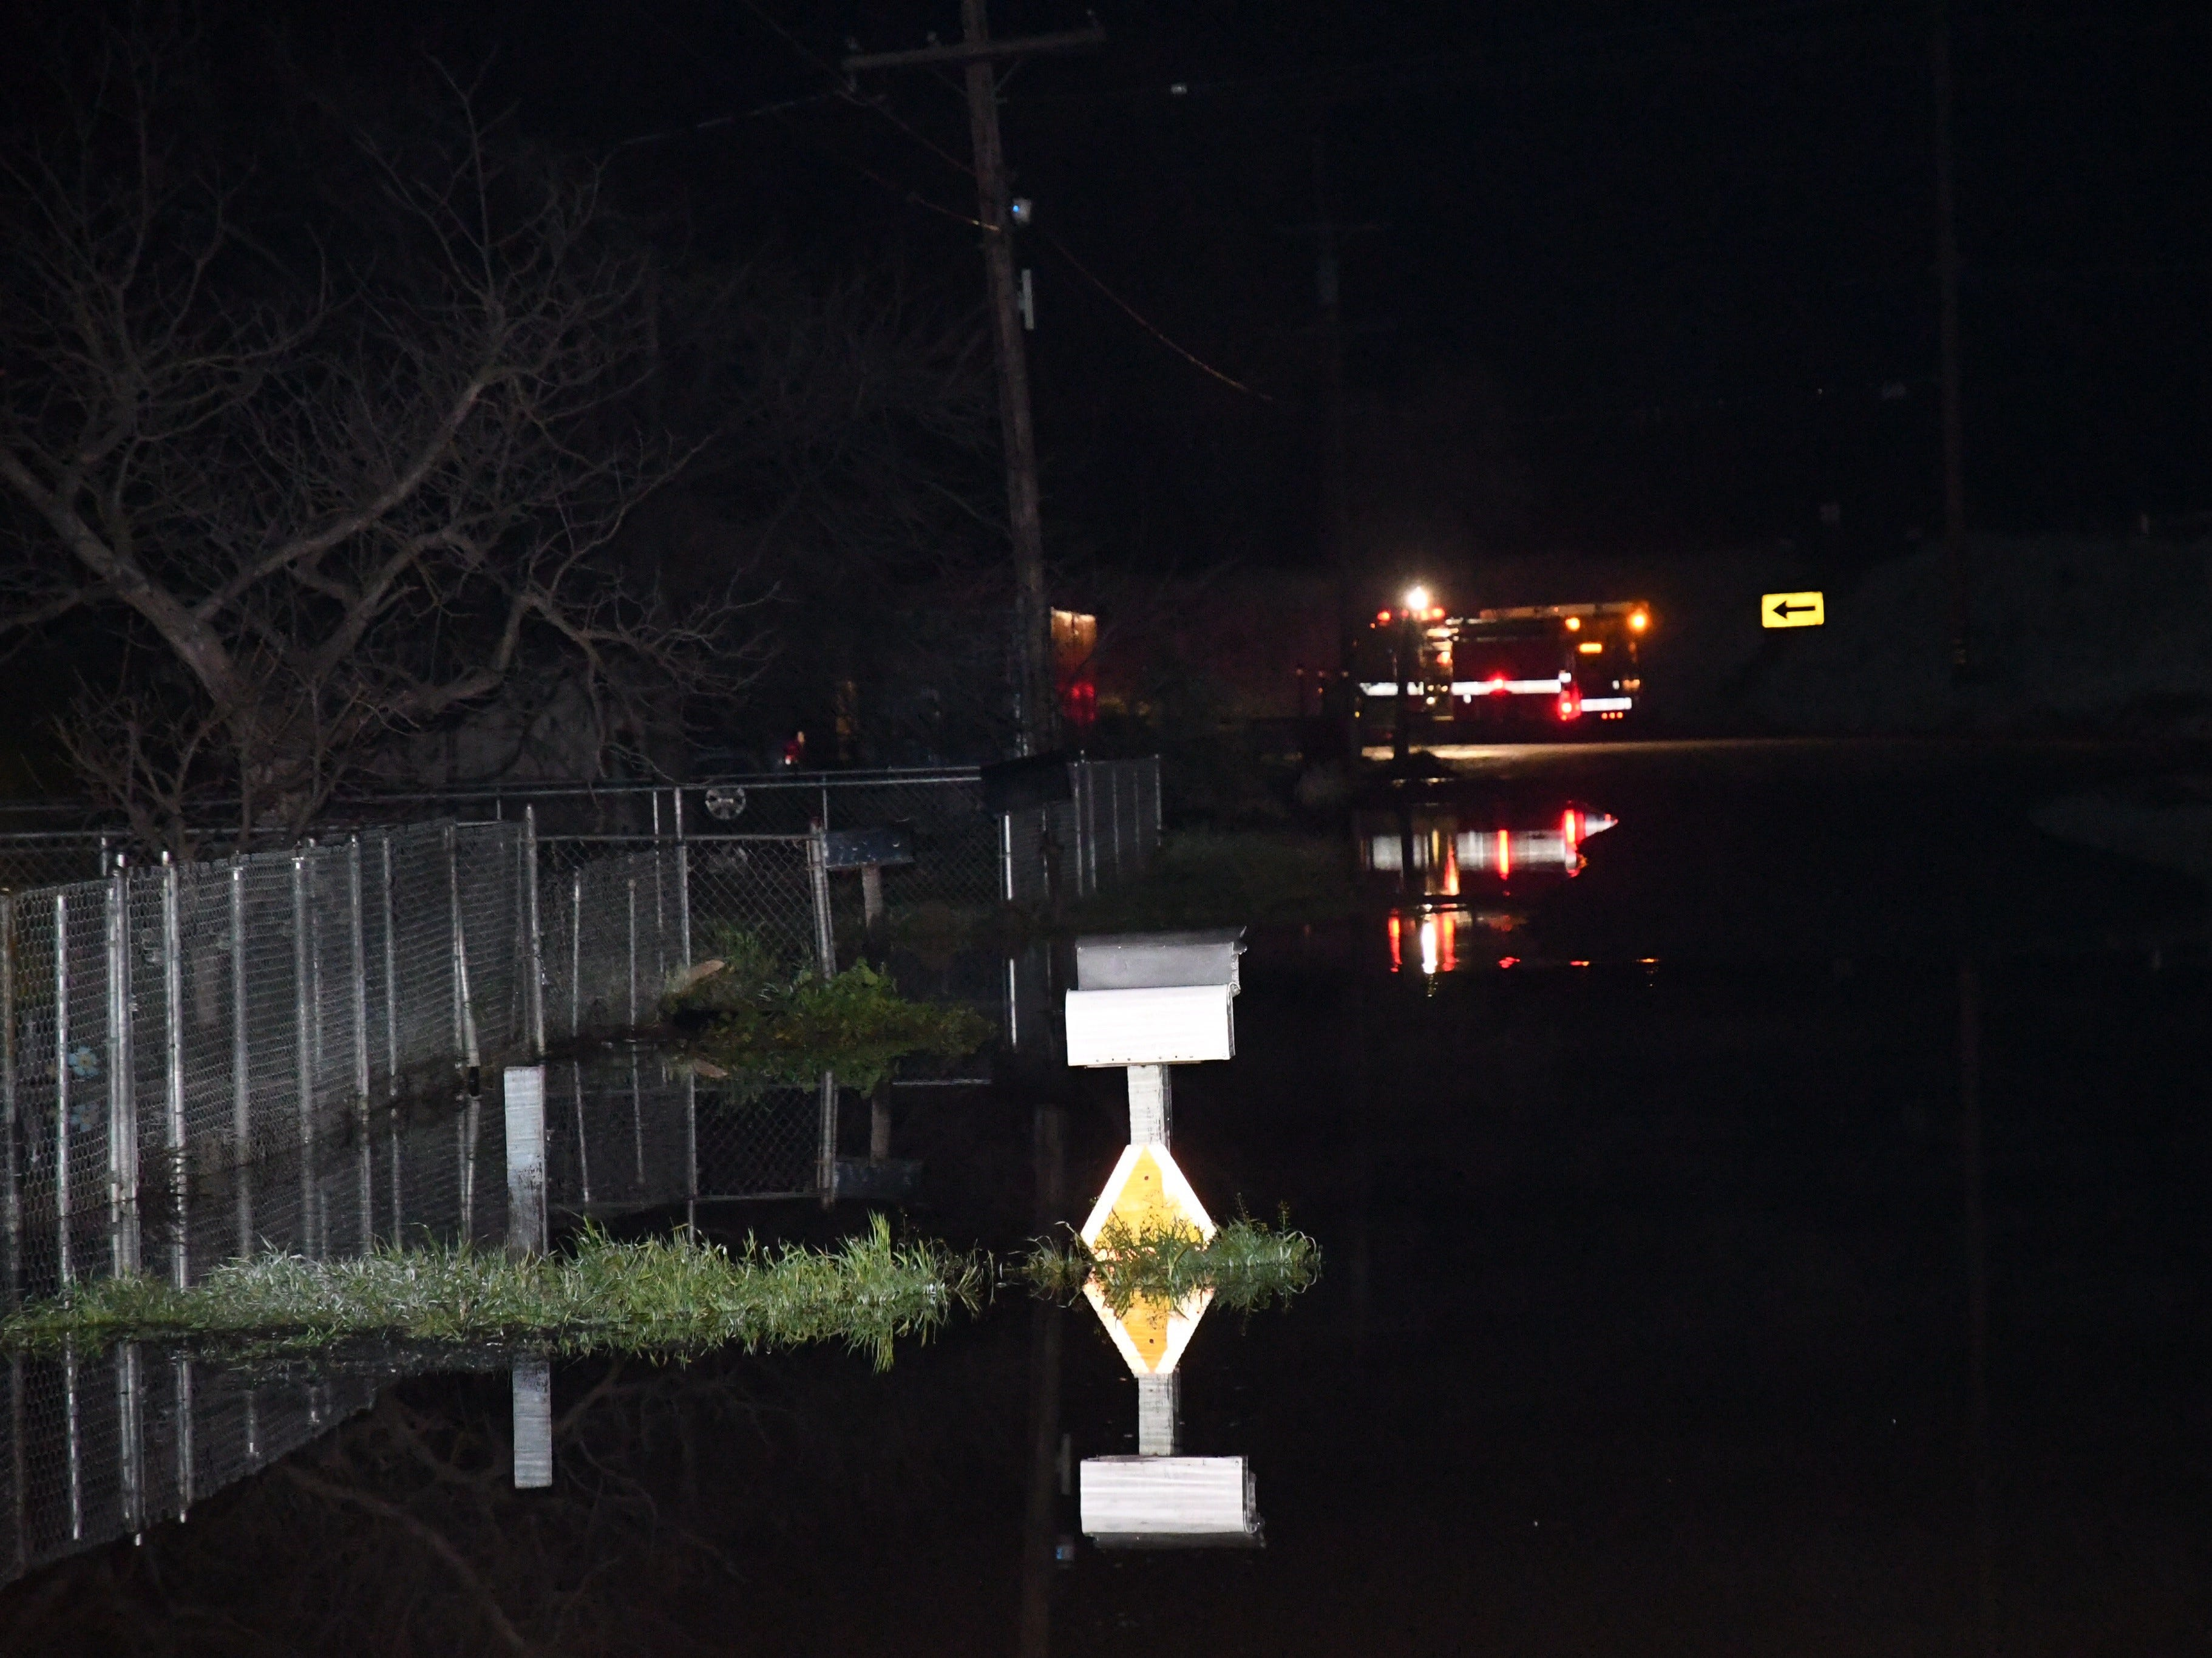 Several roads are closed and at least 21 homes are flooded after the Friant-Kern Canal spilled over on Friday night.